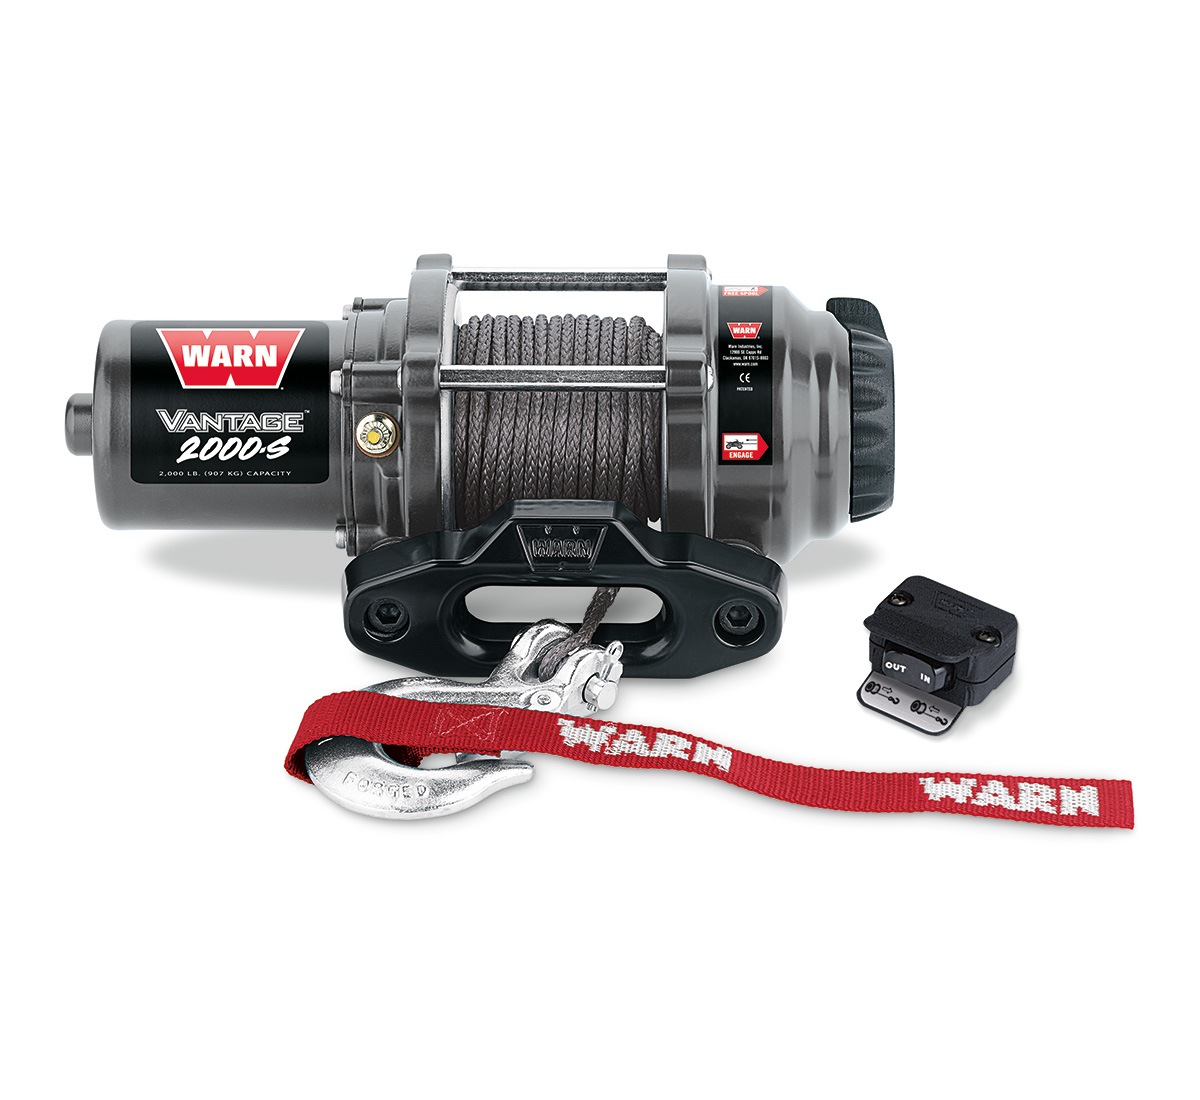 Warn Vantage 3000 Winch Wiring Diagram | Wiring Liry on